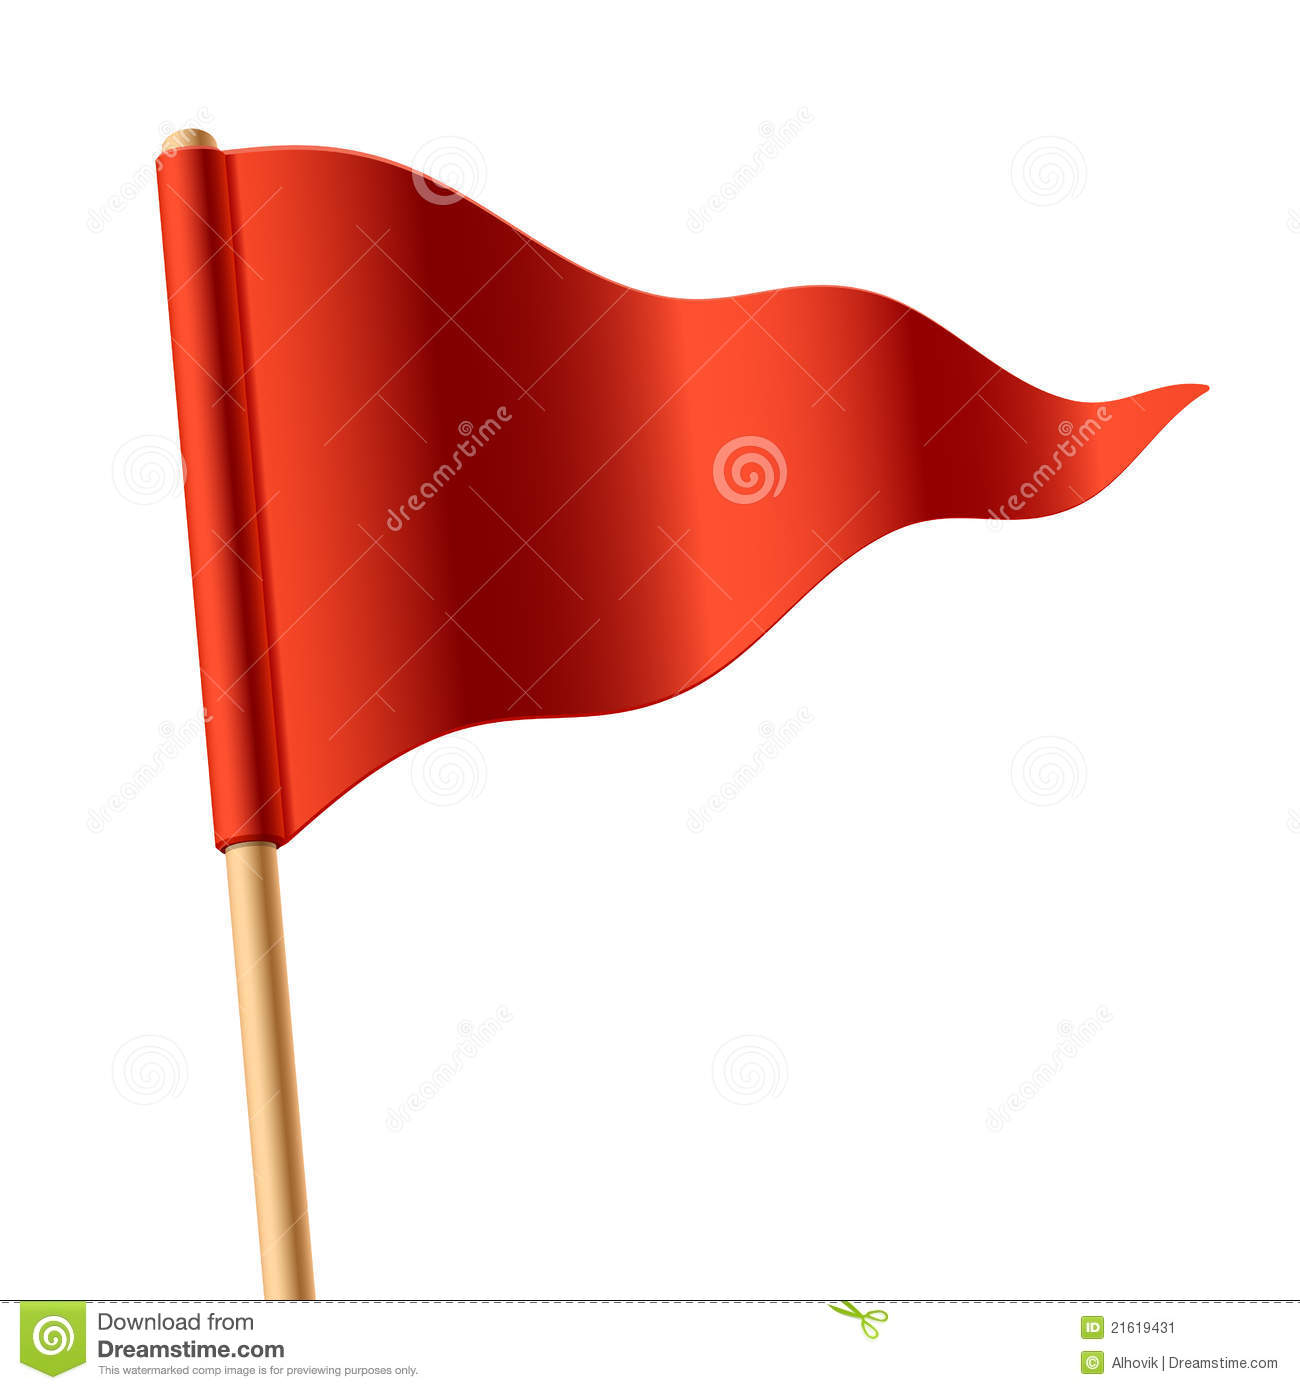 More similar stock images of ` Waving red triangular flag `